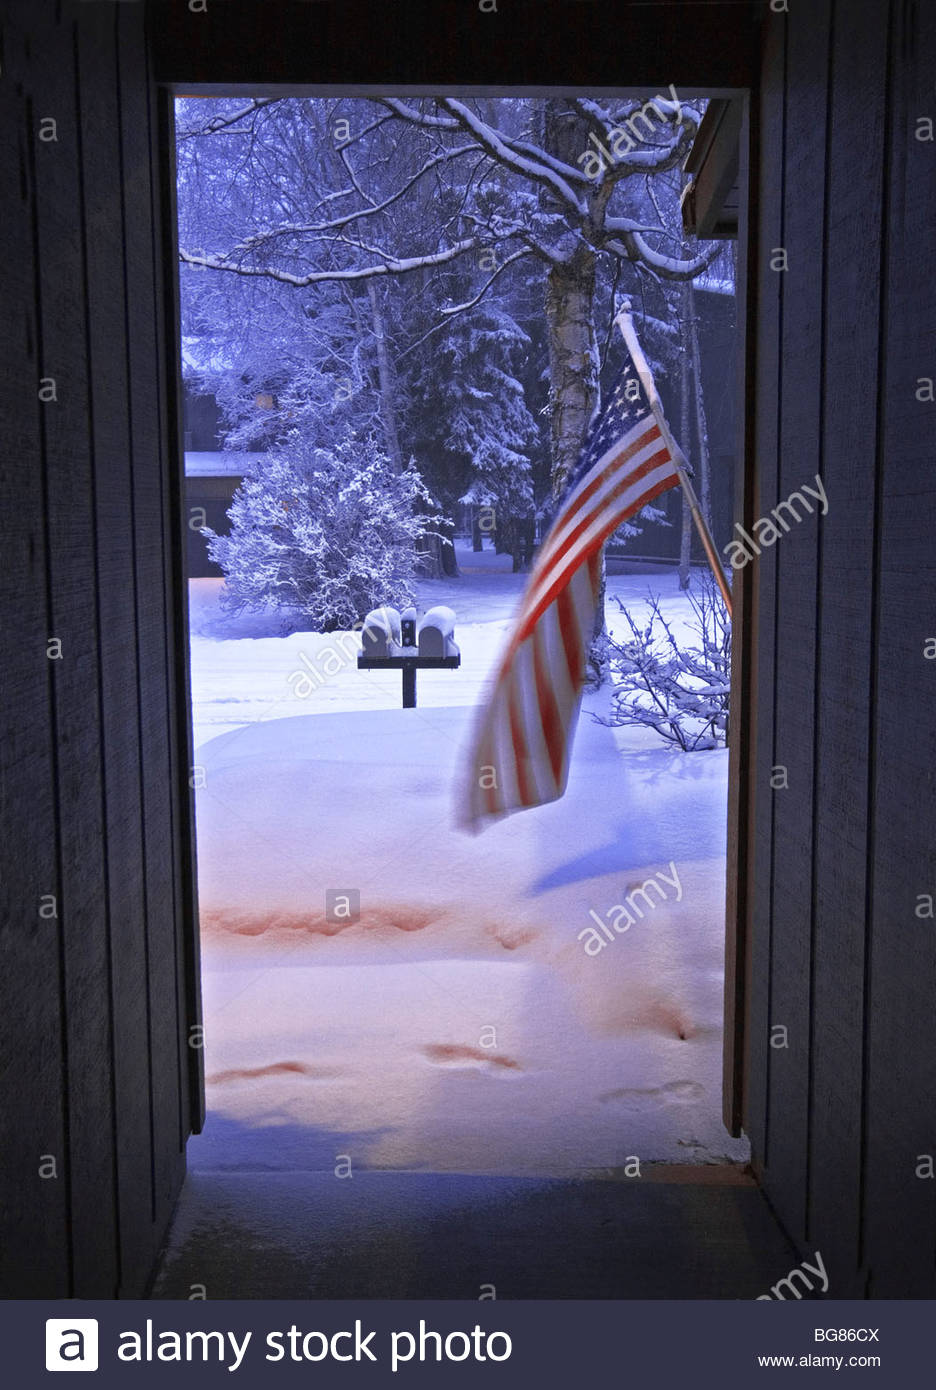 View from front door of townhouse in Anchorage, Alaska in January with snow and American flag. - Stock Image